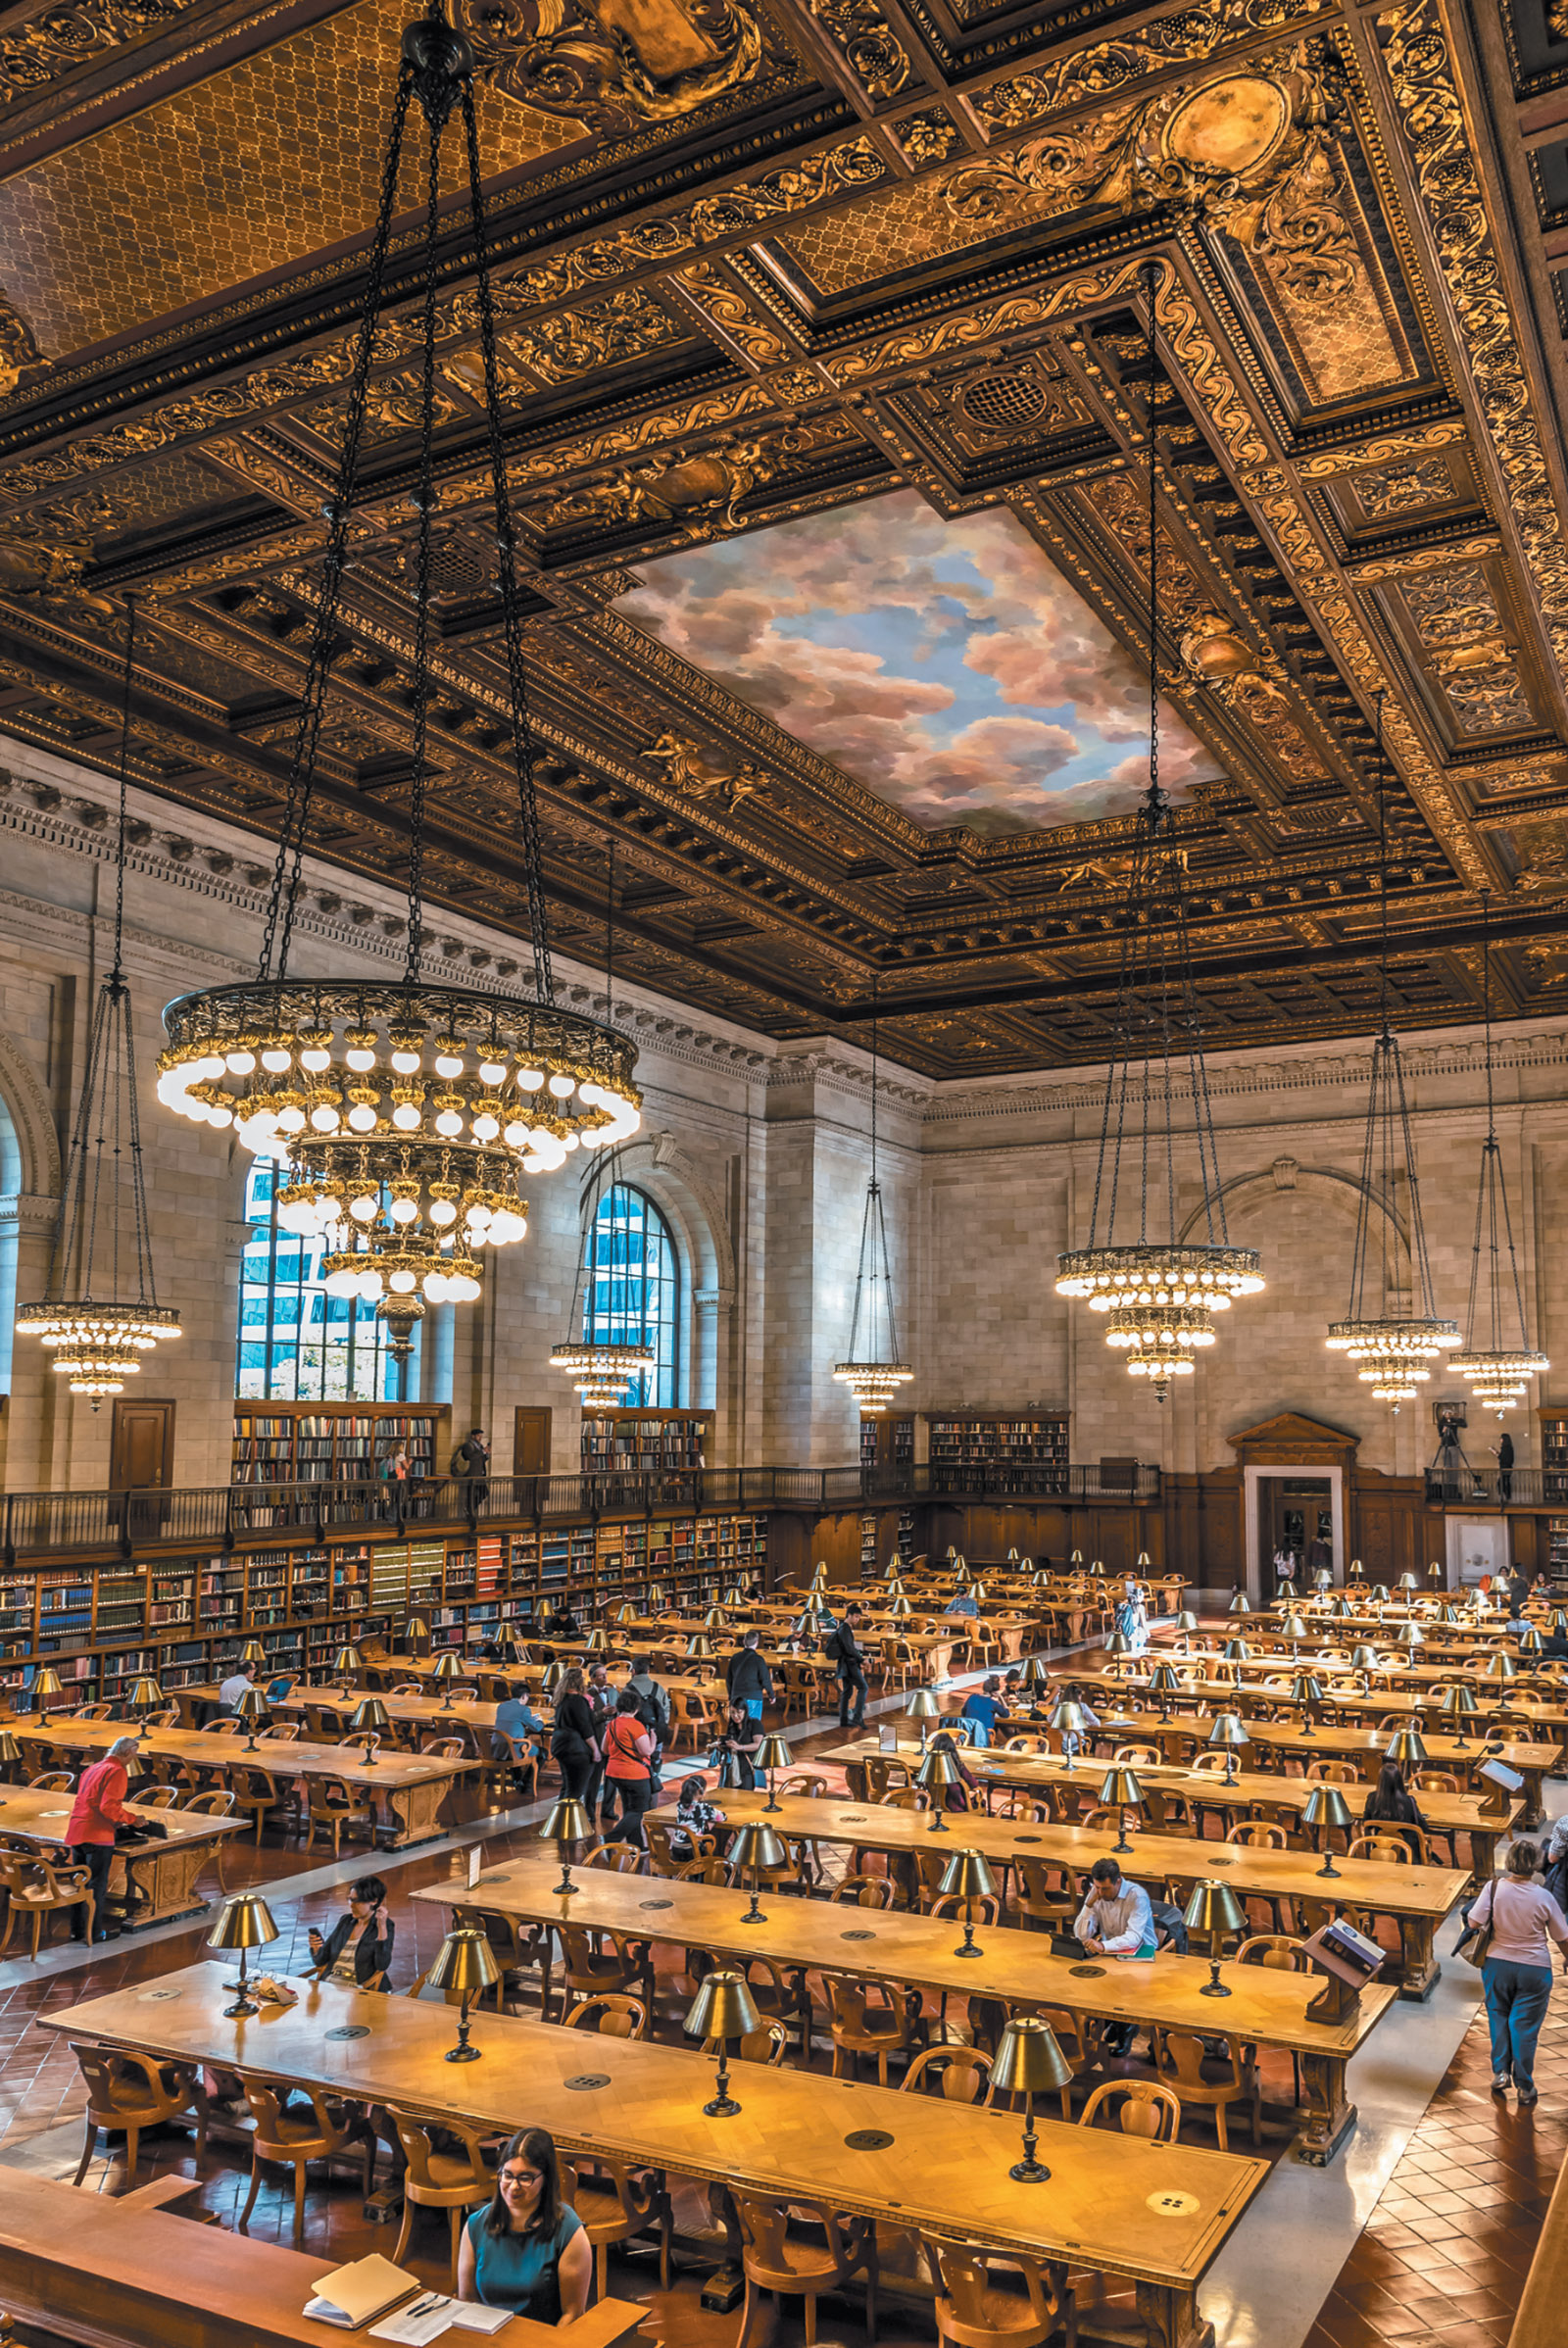 The New York Public Library's Rose Main Reading Room, which just reopened after a two-year restoration, October 2016